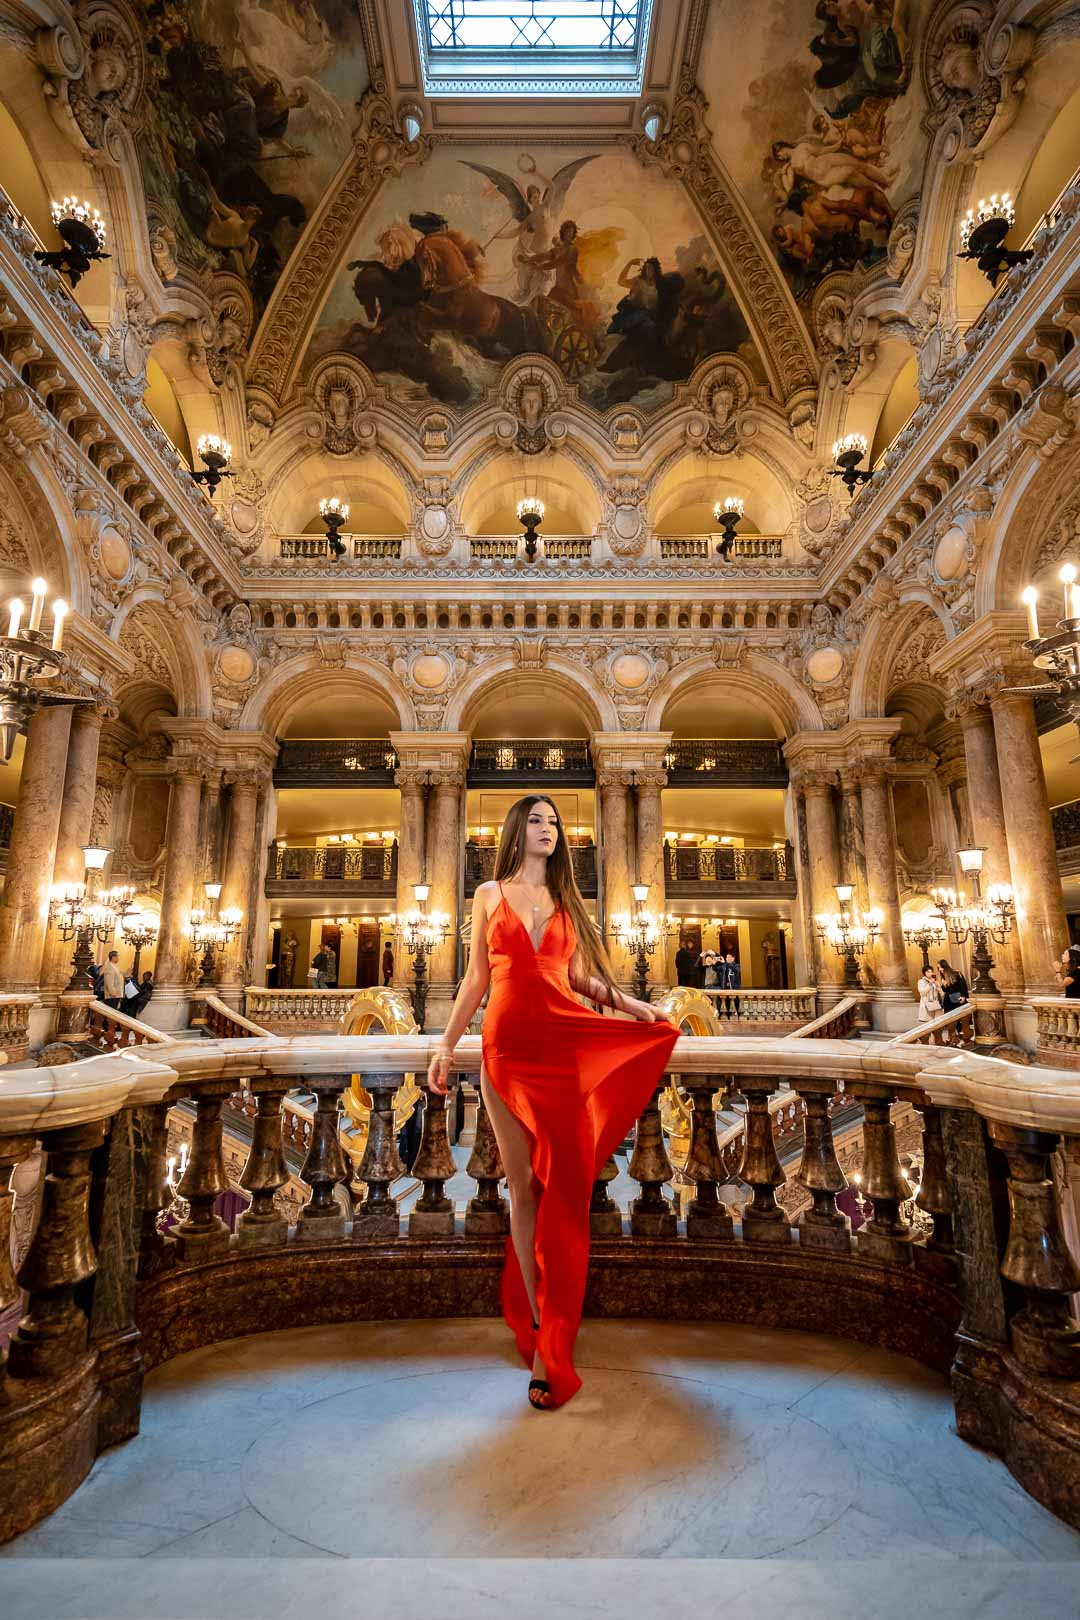 Woman in a red dress on a balcony of the grand hall of the Opéra Garnier